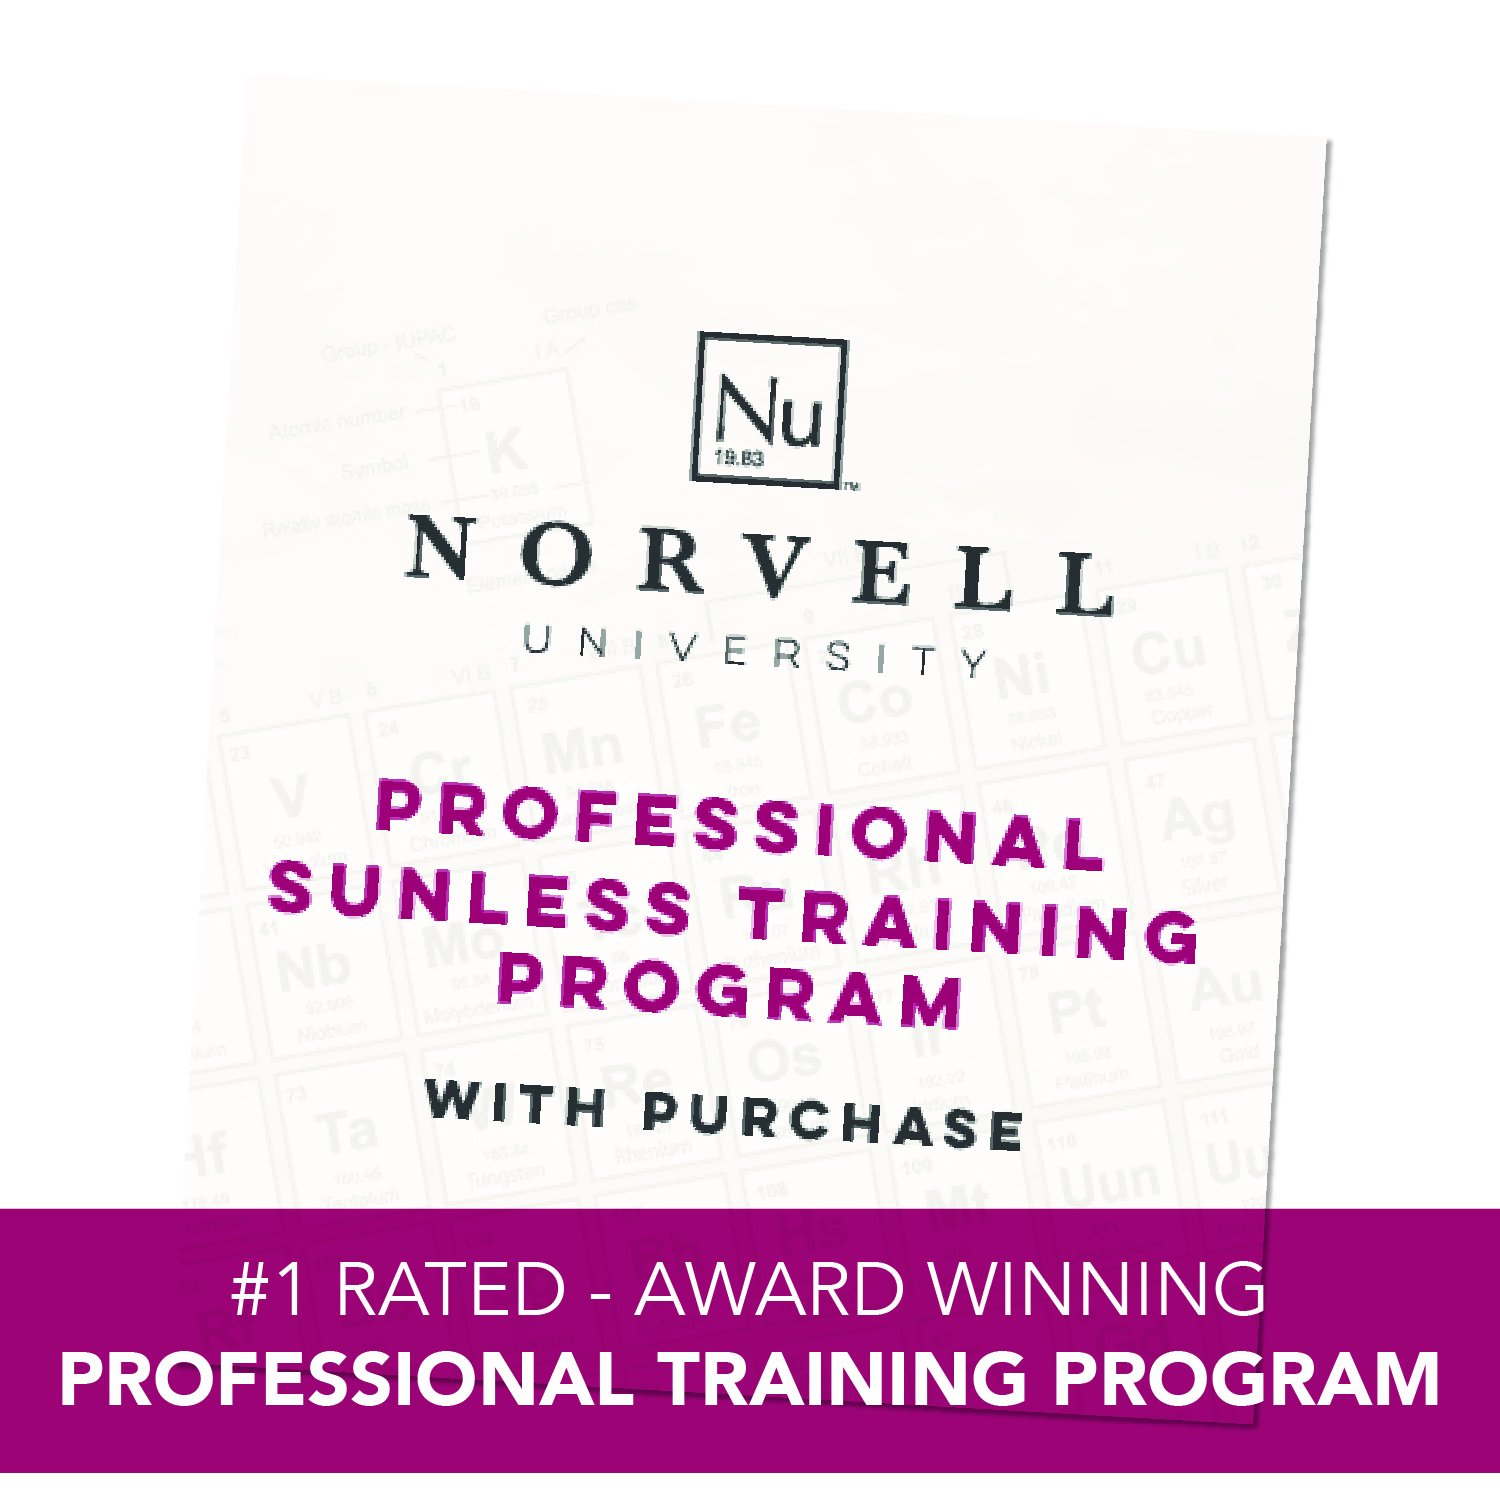 Norvell Sunless Kit - M1000 Mobile HVLP Spray Tan Airbrush Machine + 8 oz Tanning Solutions in Clear Plus, Venetian and Dark + Norvell Training Program (Retail Value $490) by Norvell (Image #5)